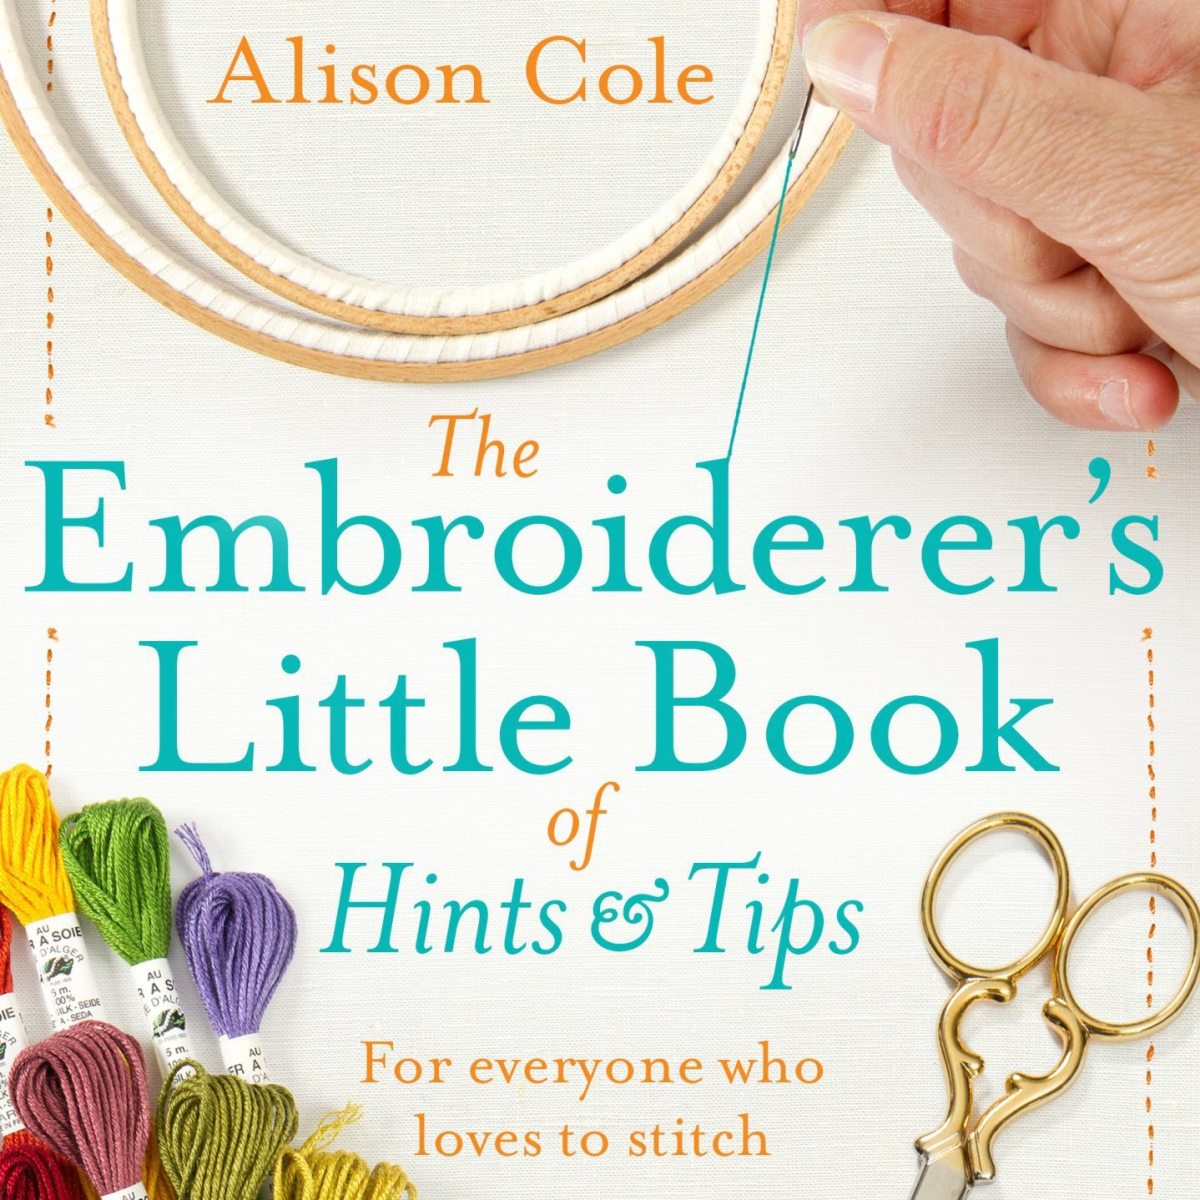 Alison Cole's 'Little Book of Hints & Tips'